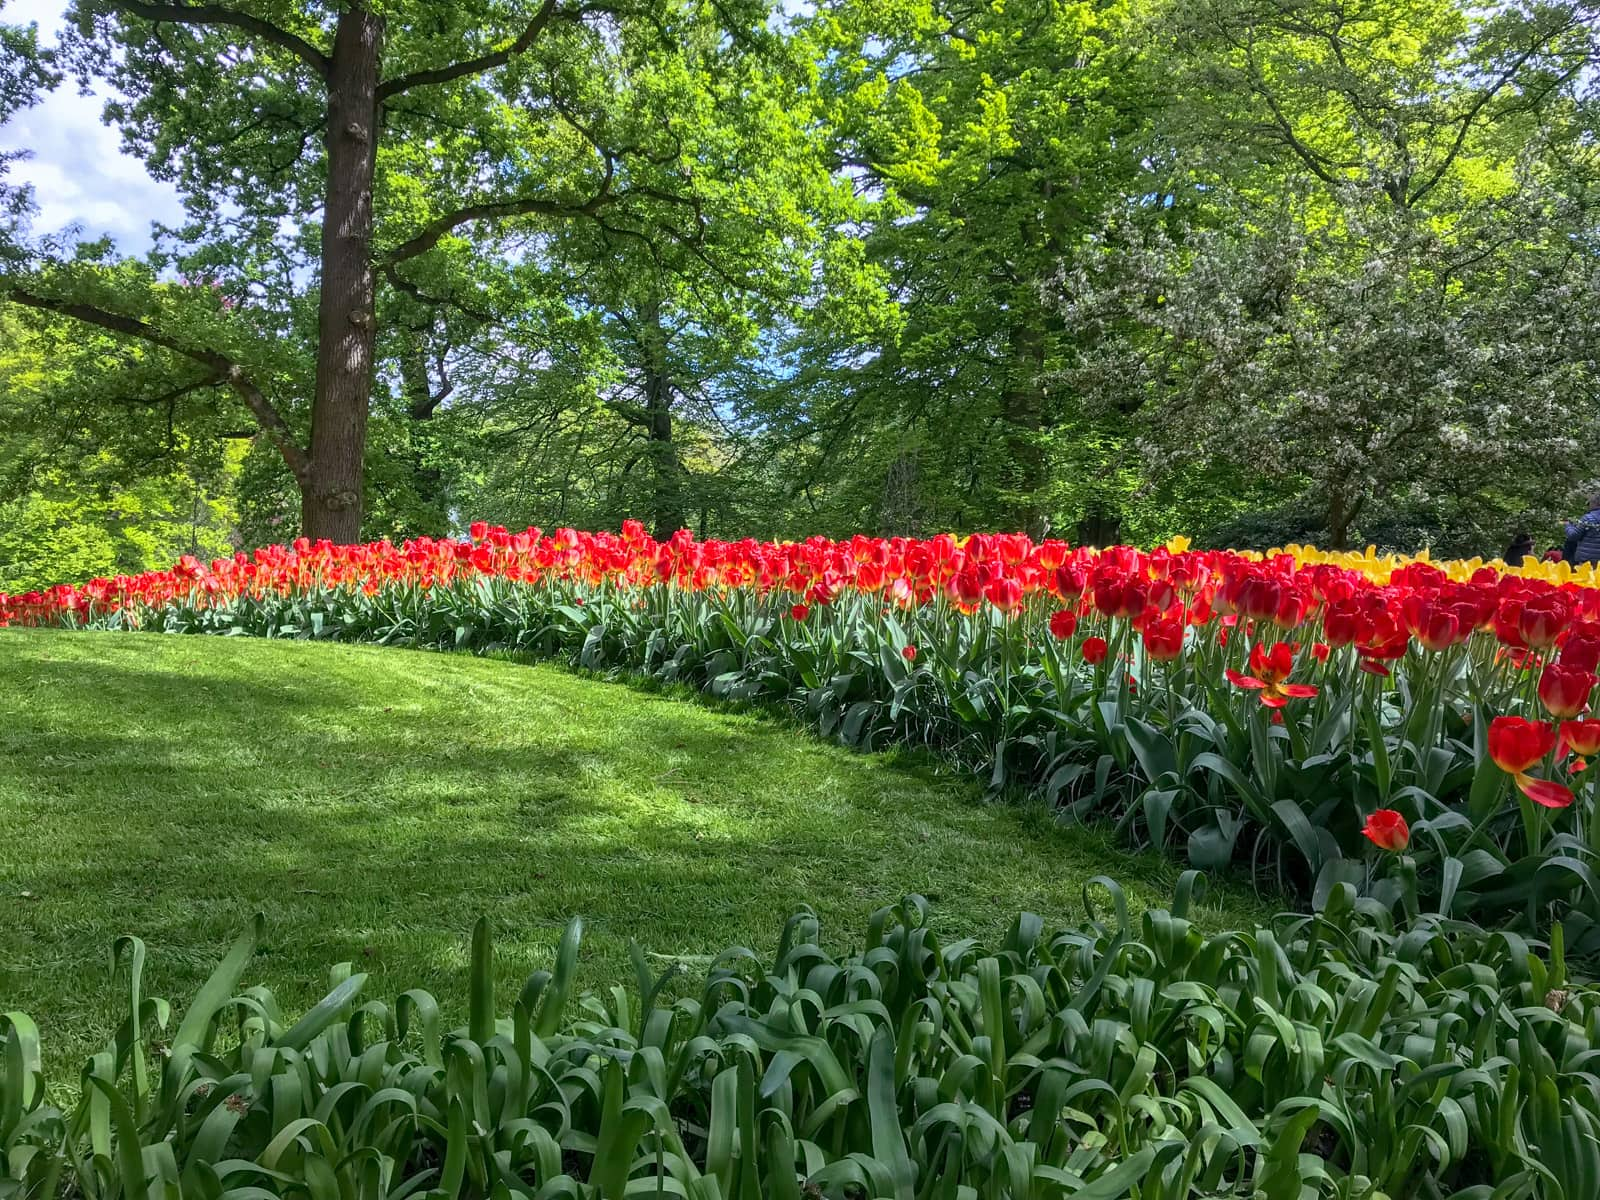 Long rows of red tulips stretching from the bottom right of frame to the top left of frame. The garden they are planted in is lush and green.